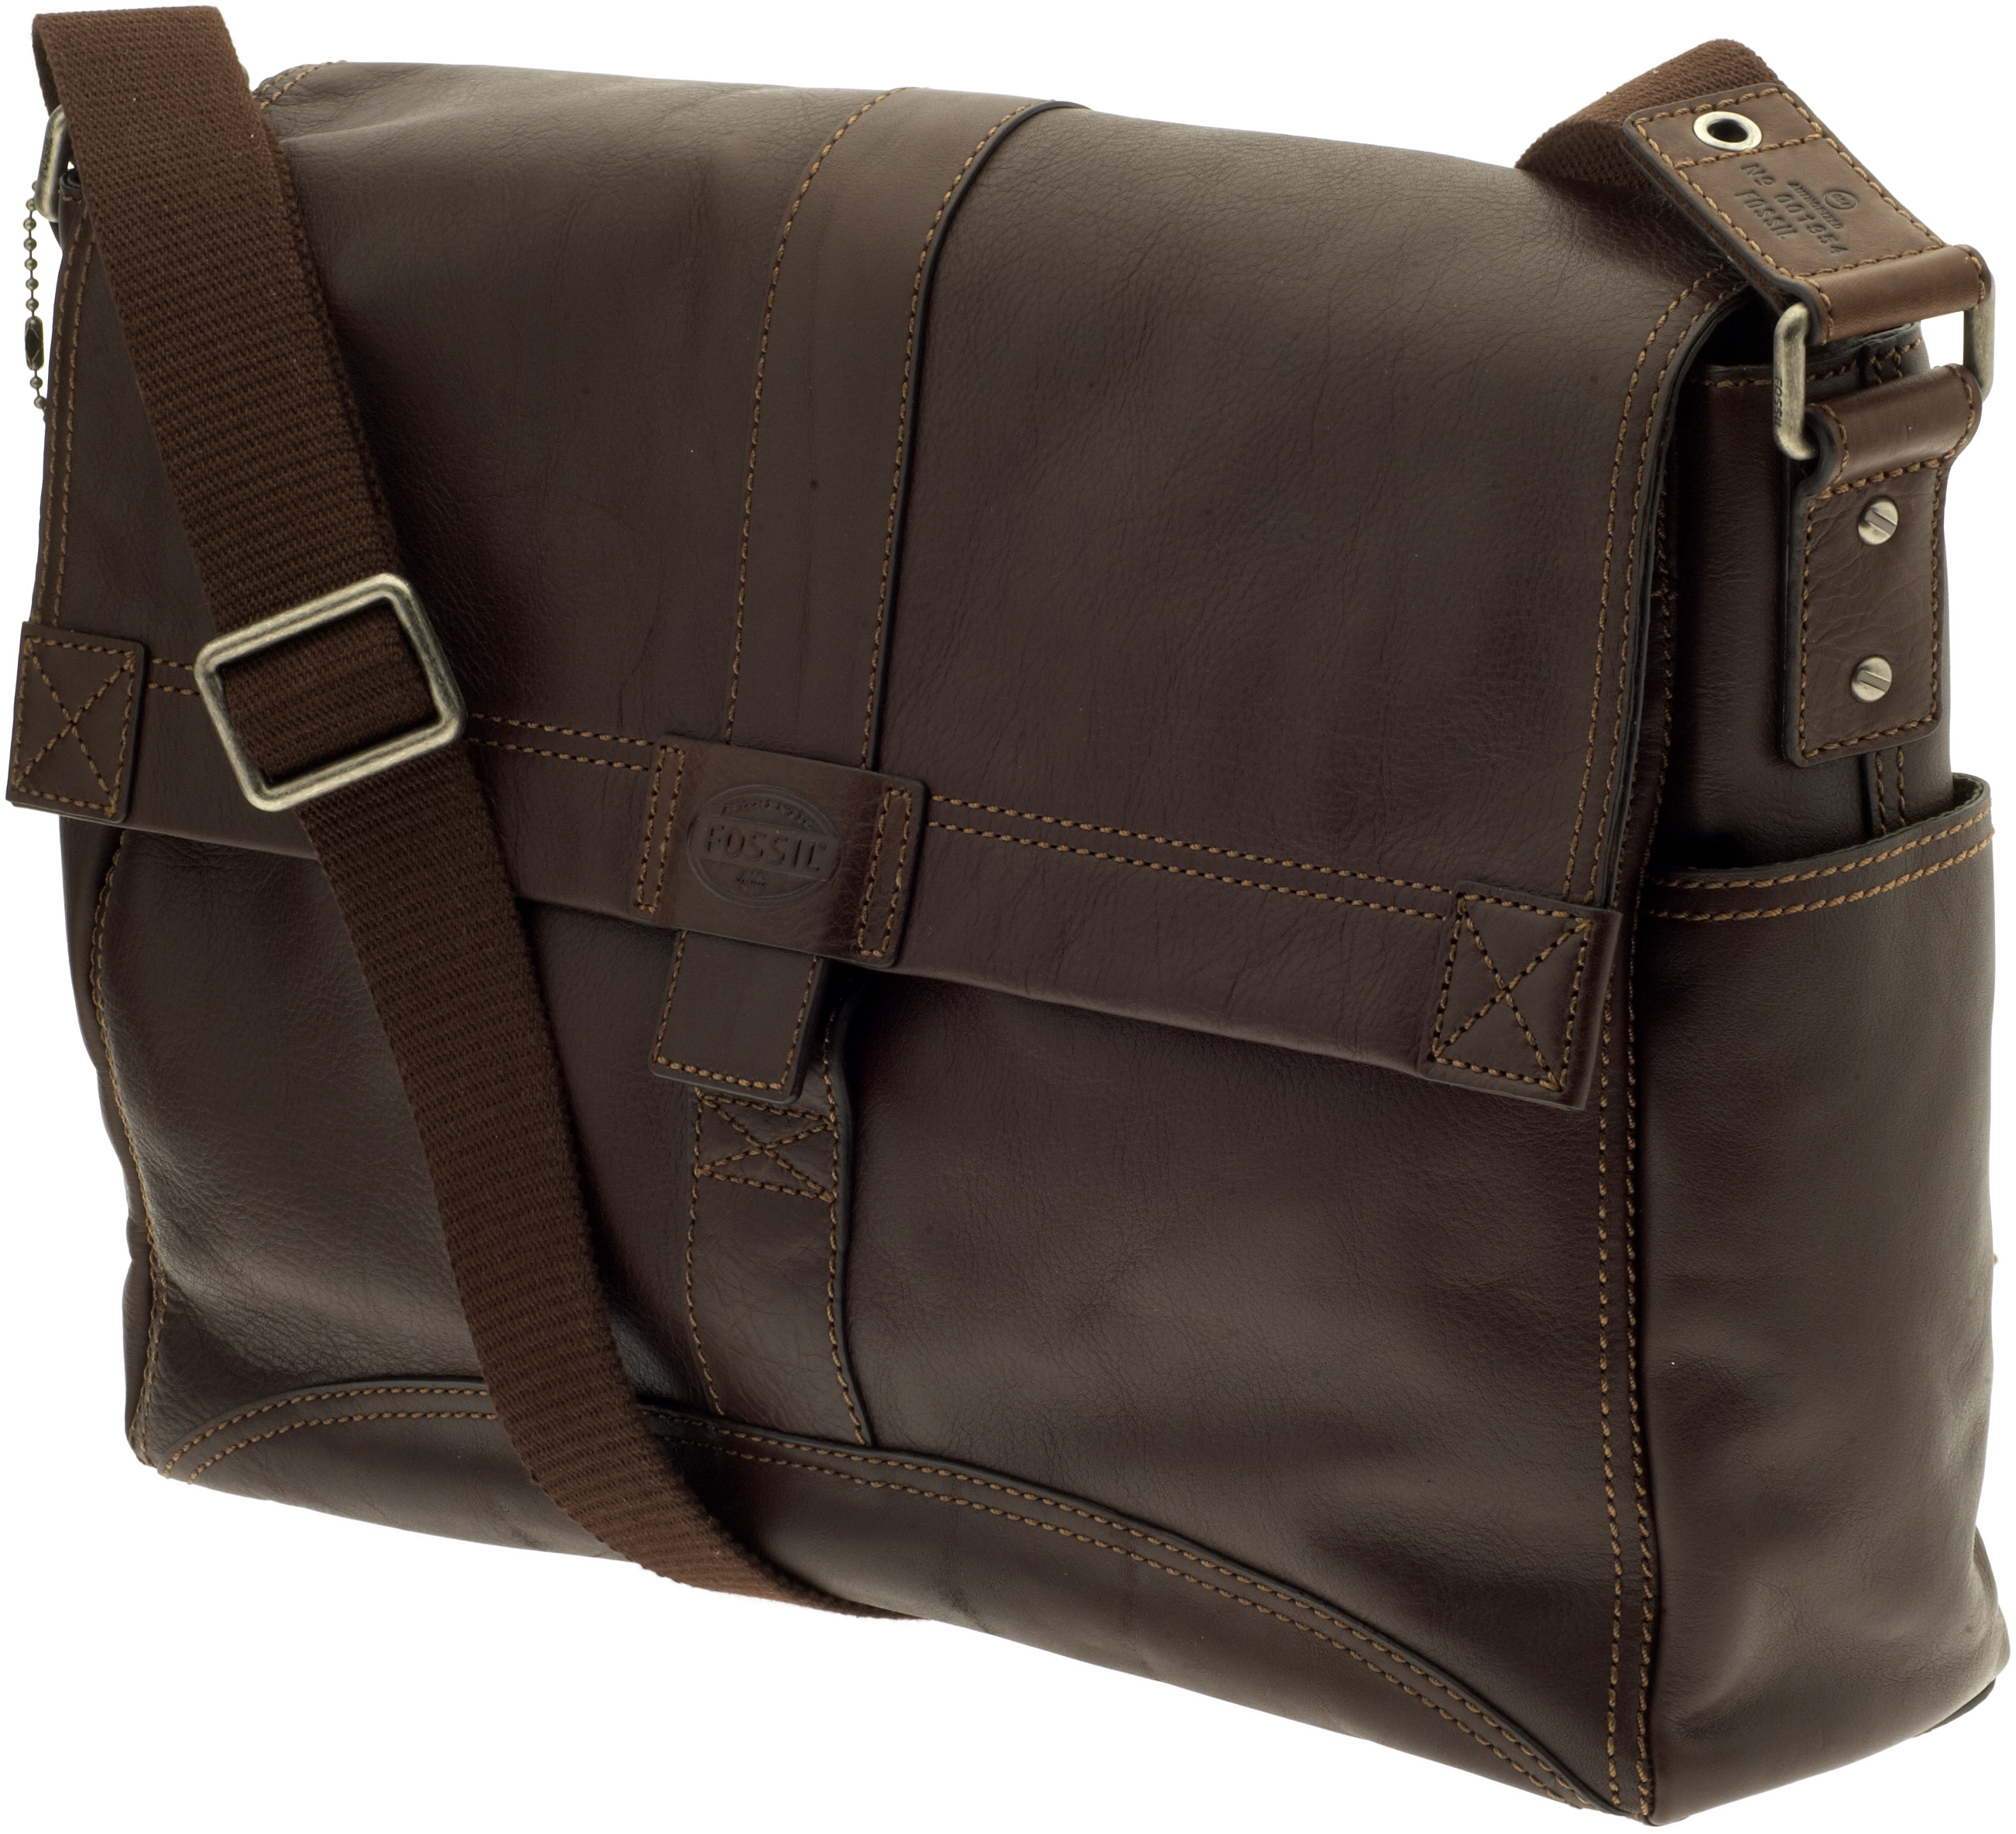 This is a great casual or casual work messenger bag